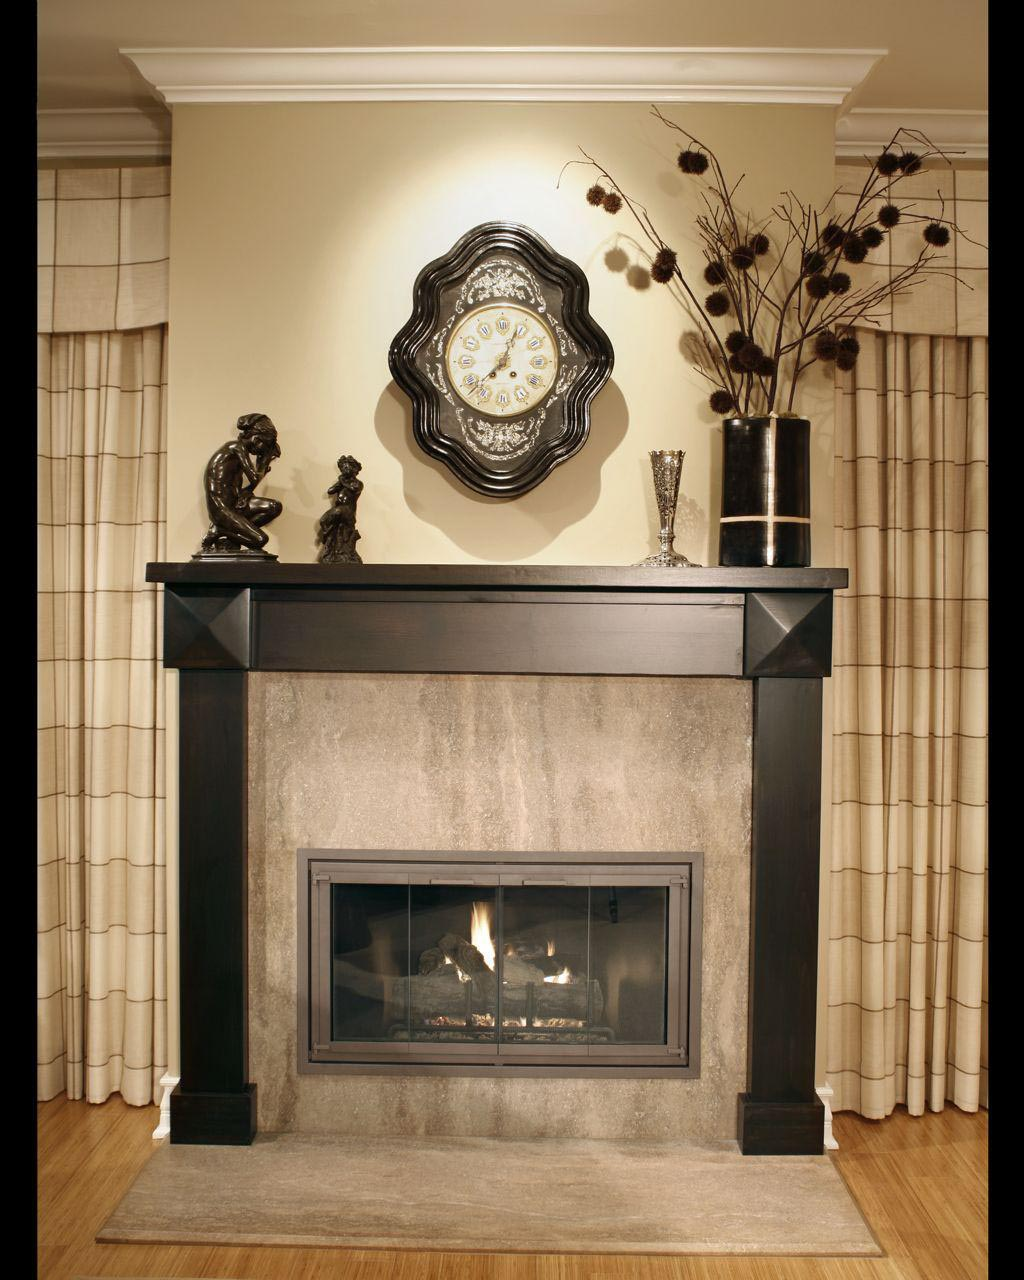 Amazoncom stone mantel shelf